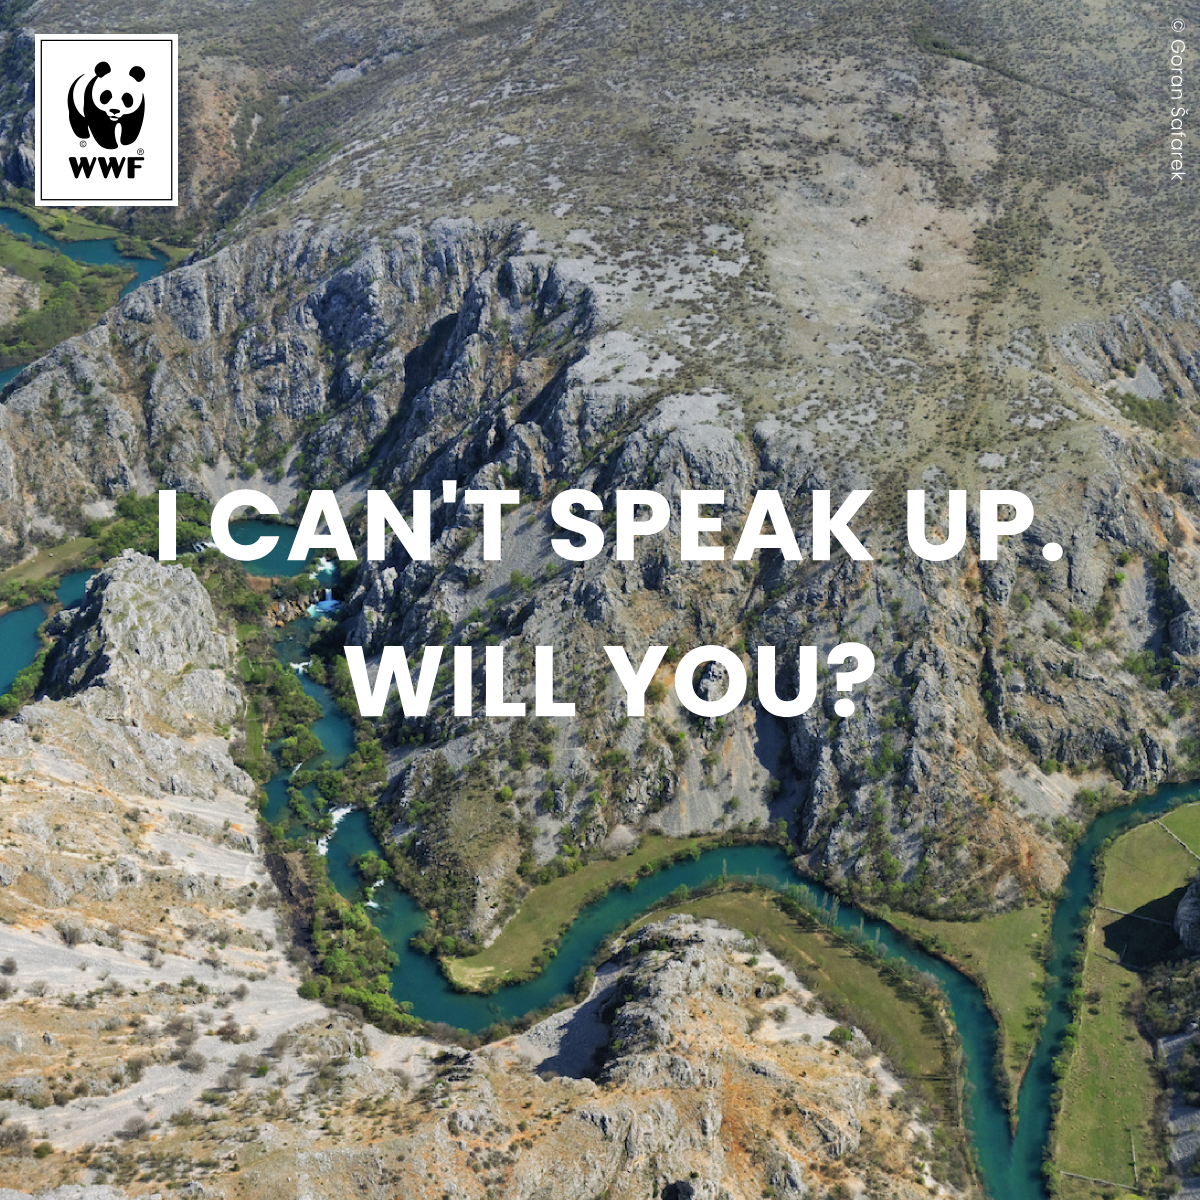 #ProtectWater campaign, confluence of Krupa and Zrmanja rivers in Croatia